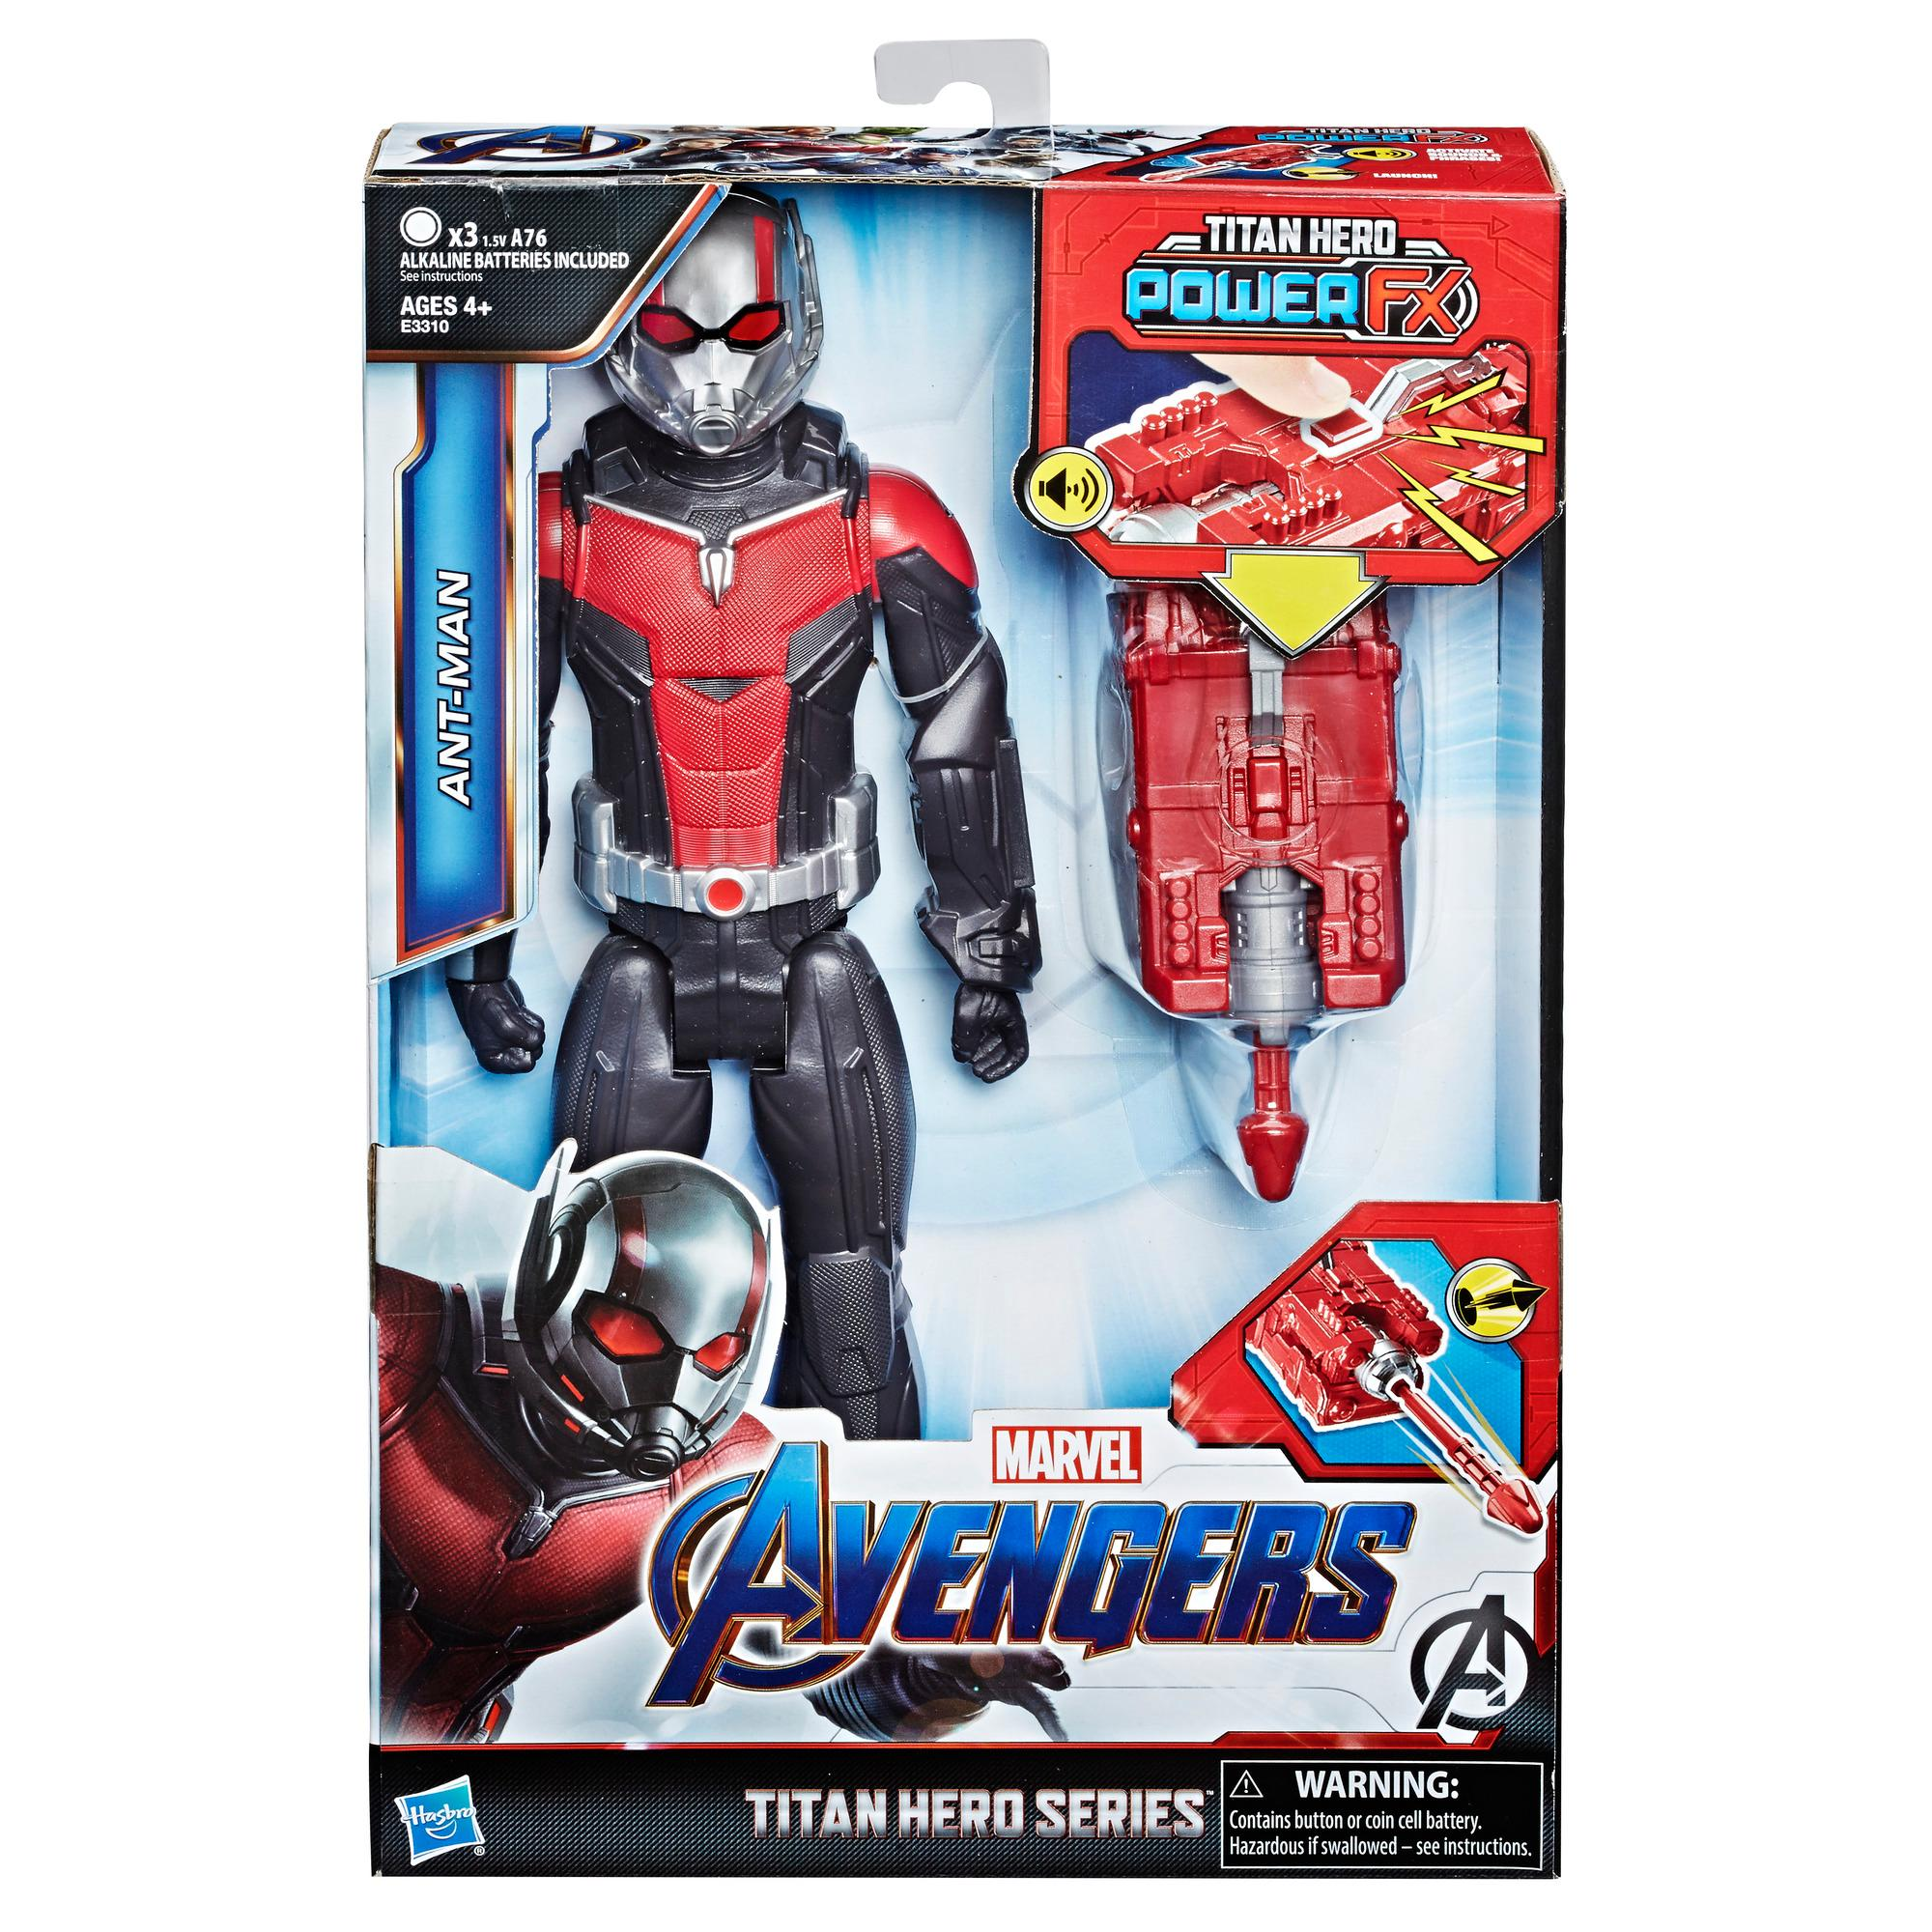 Avengers Titan Hero Power FX 2.0 ANT MAN